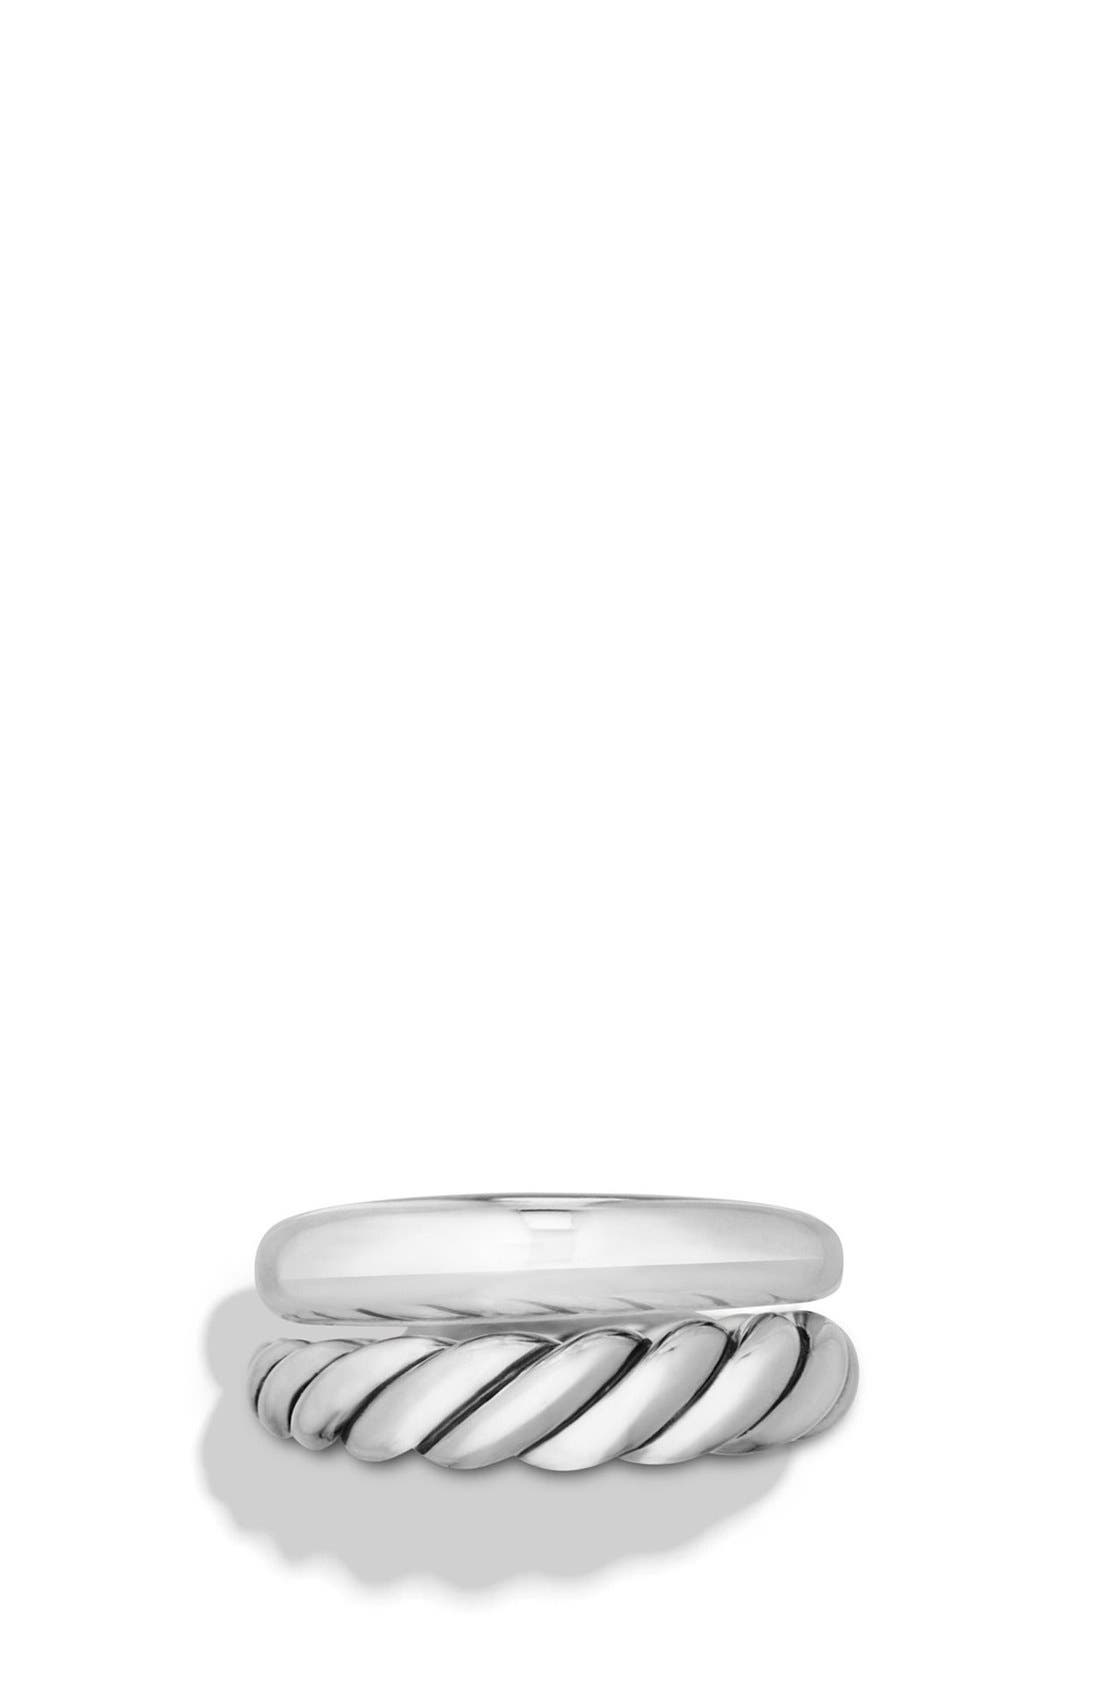 'Pure Form' Sterling Silver Stacking Rings,                             Alternate thumbnail 2, color,                             SILVER